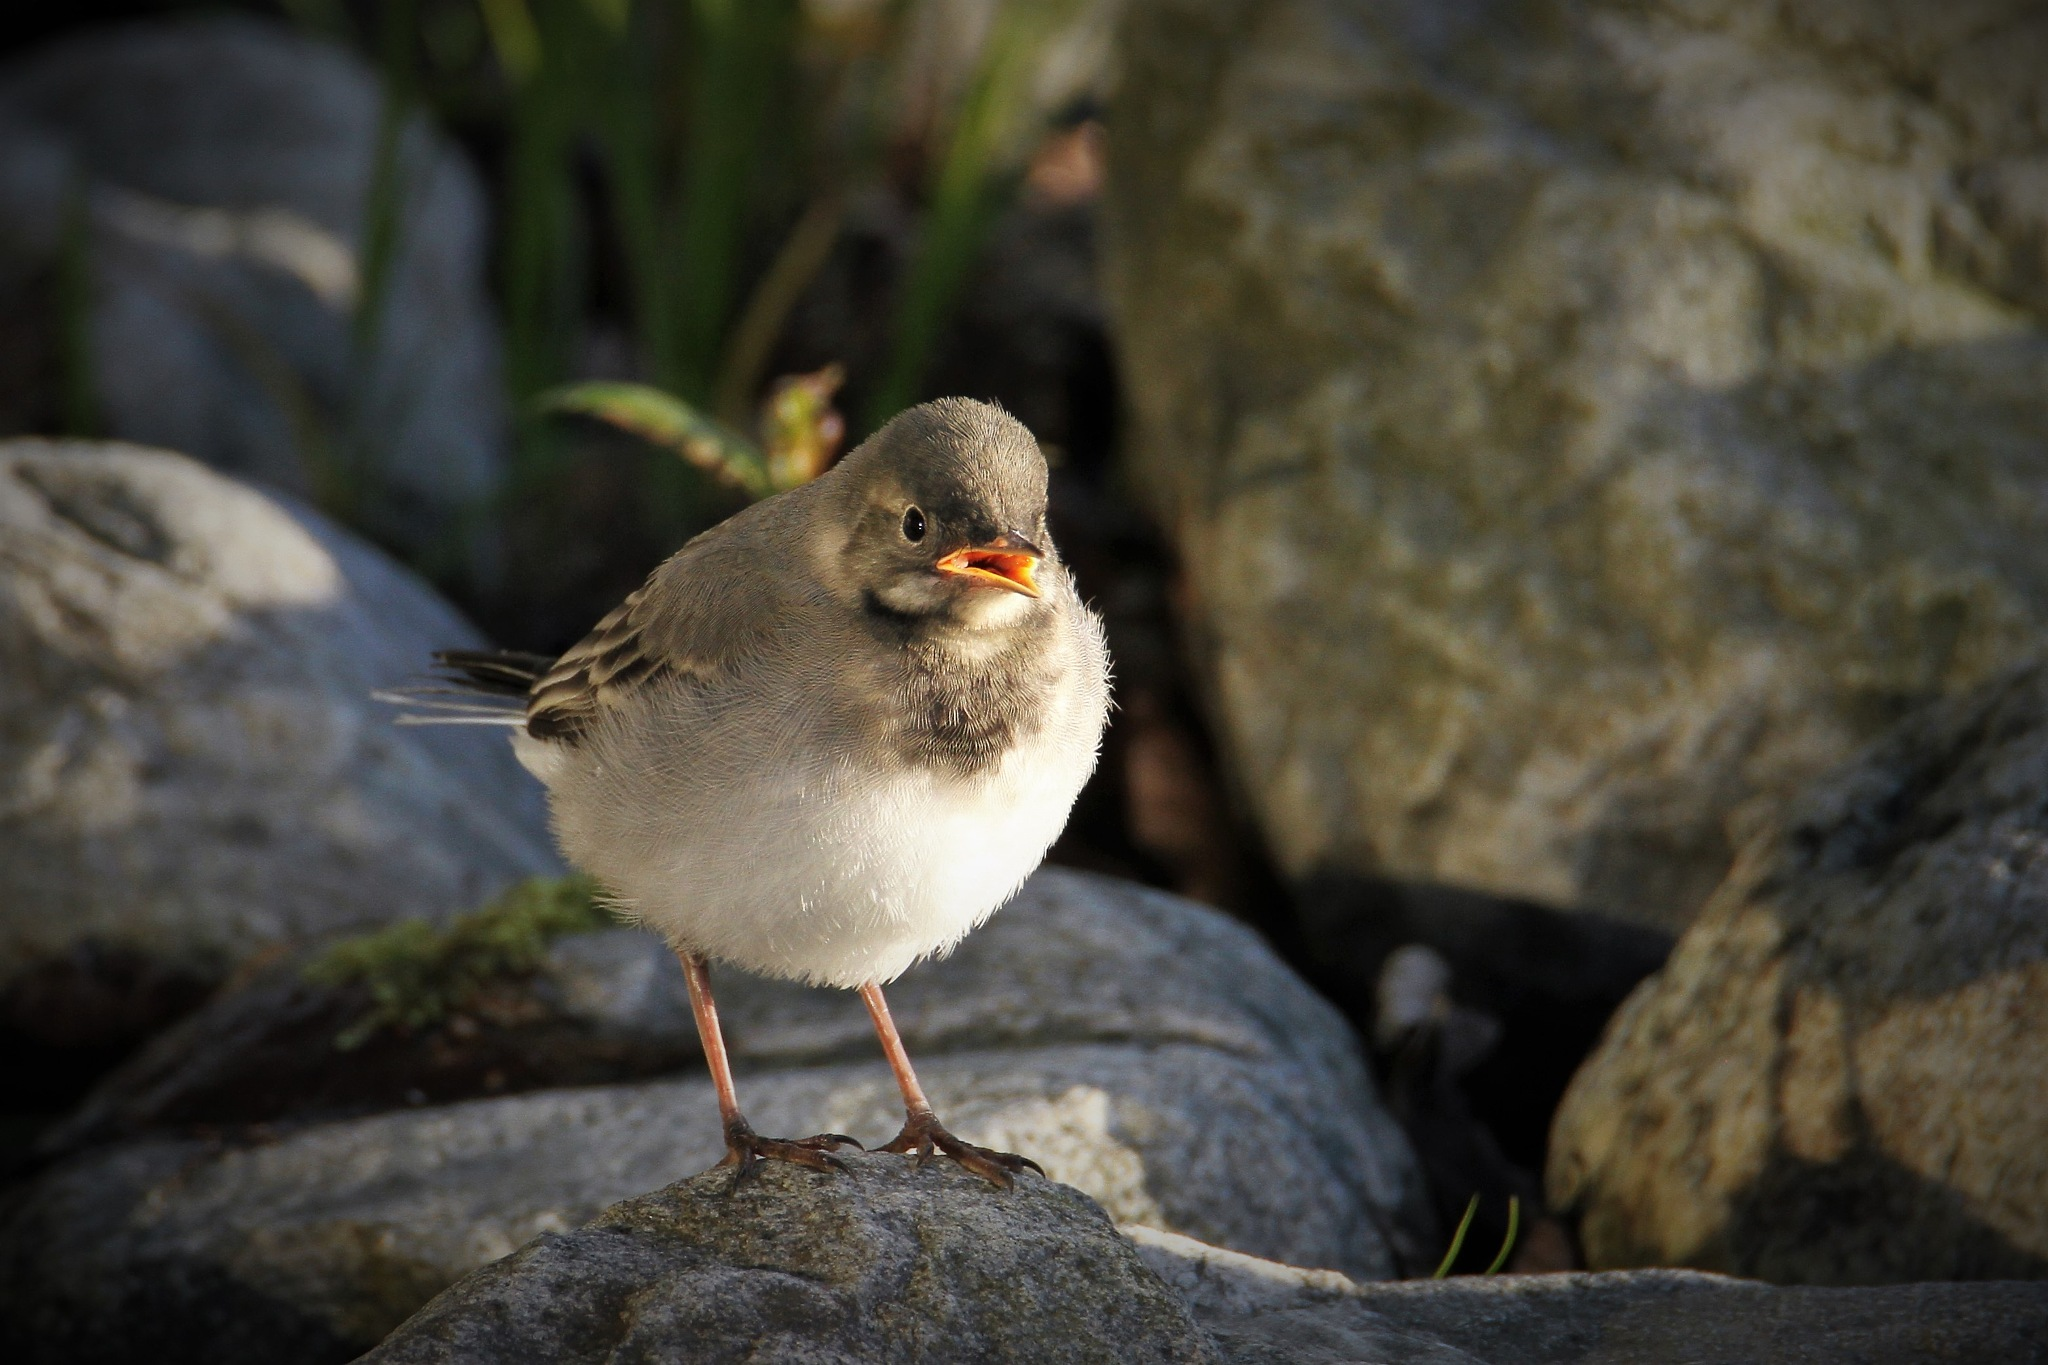 Young White Wagtail by Svein Erik Andresen